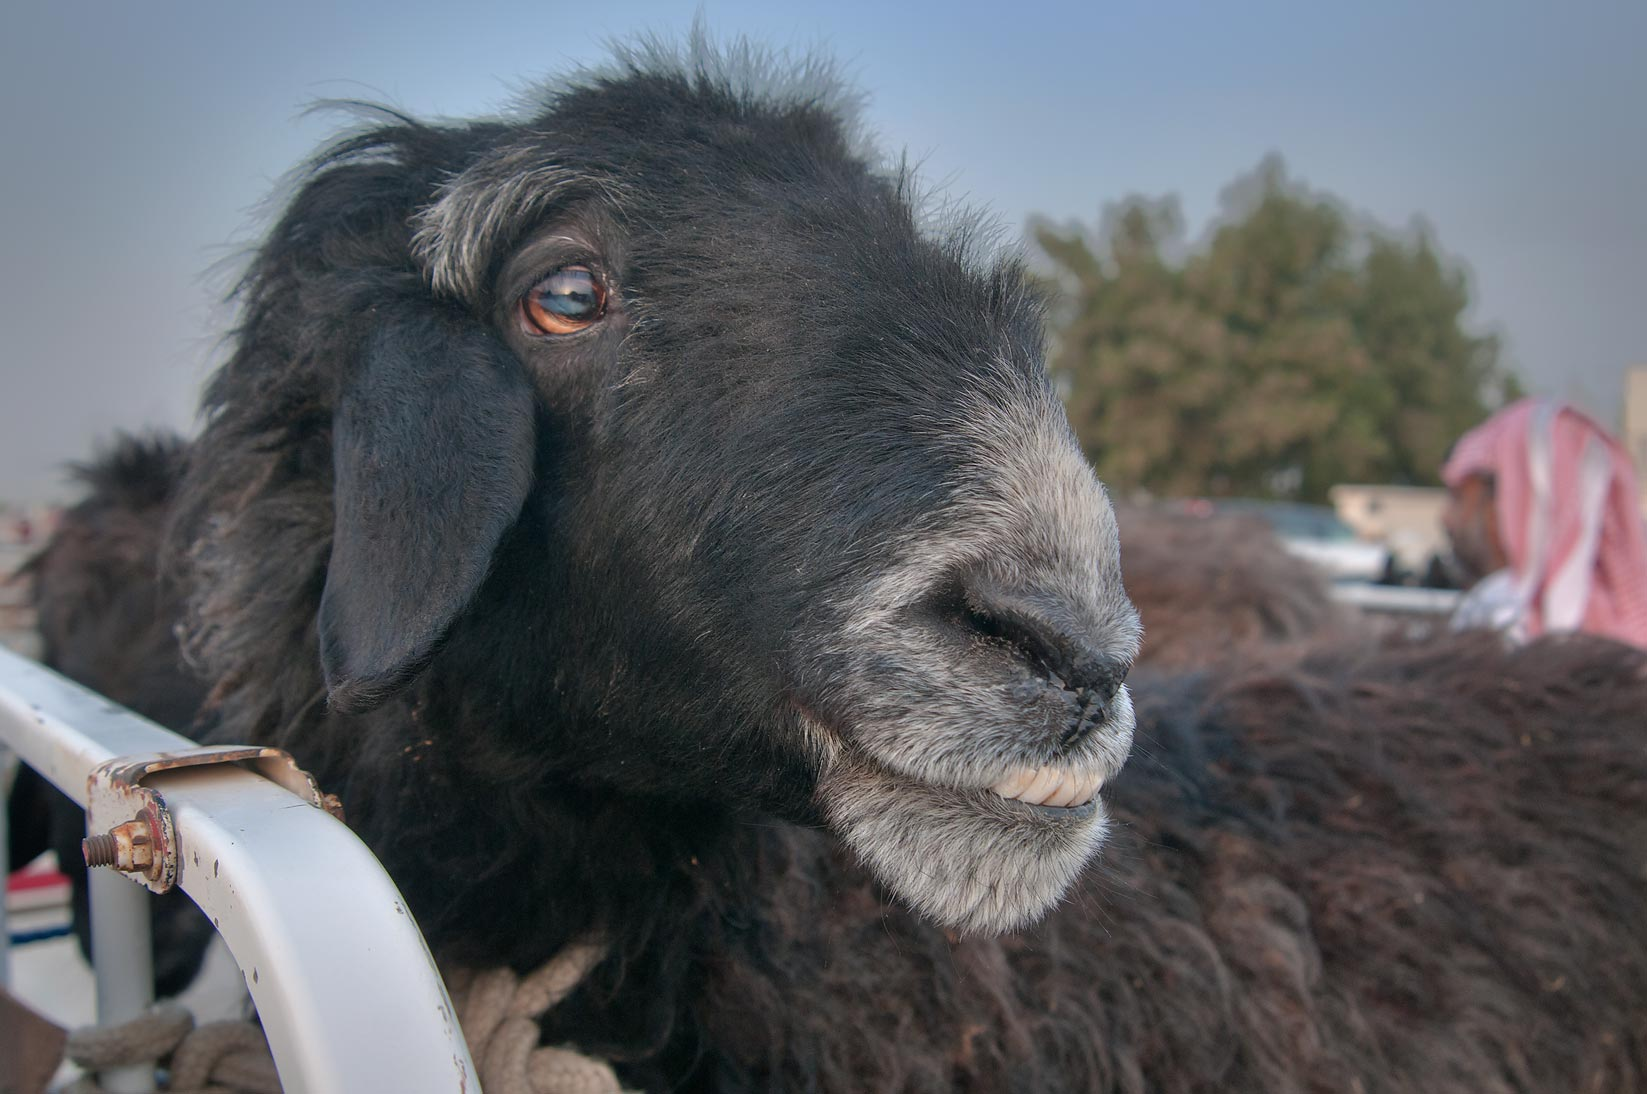 Najdi goat in a truck in Wholesale Animal Market. Doha, Qatar